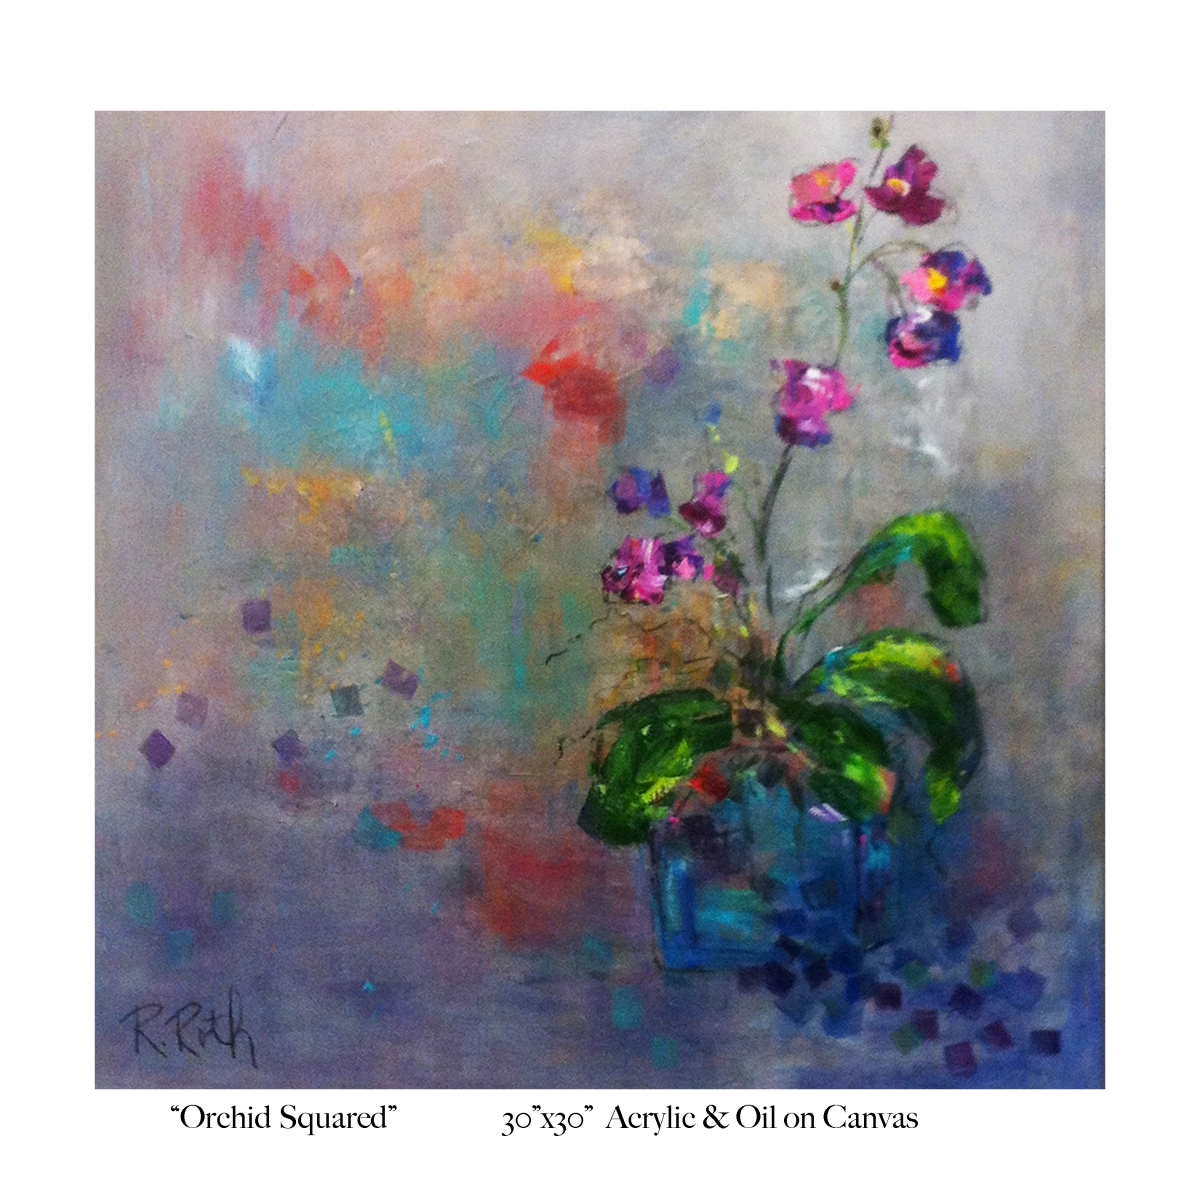 Orchid Squared (large view)